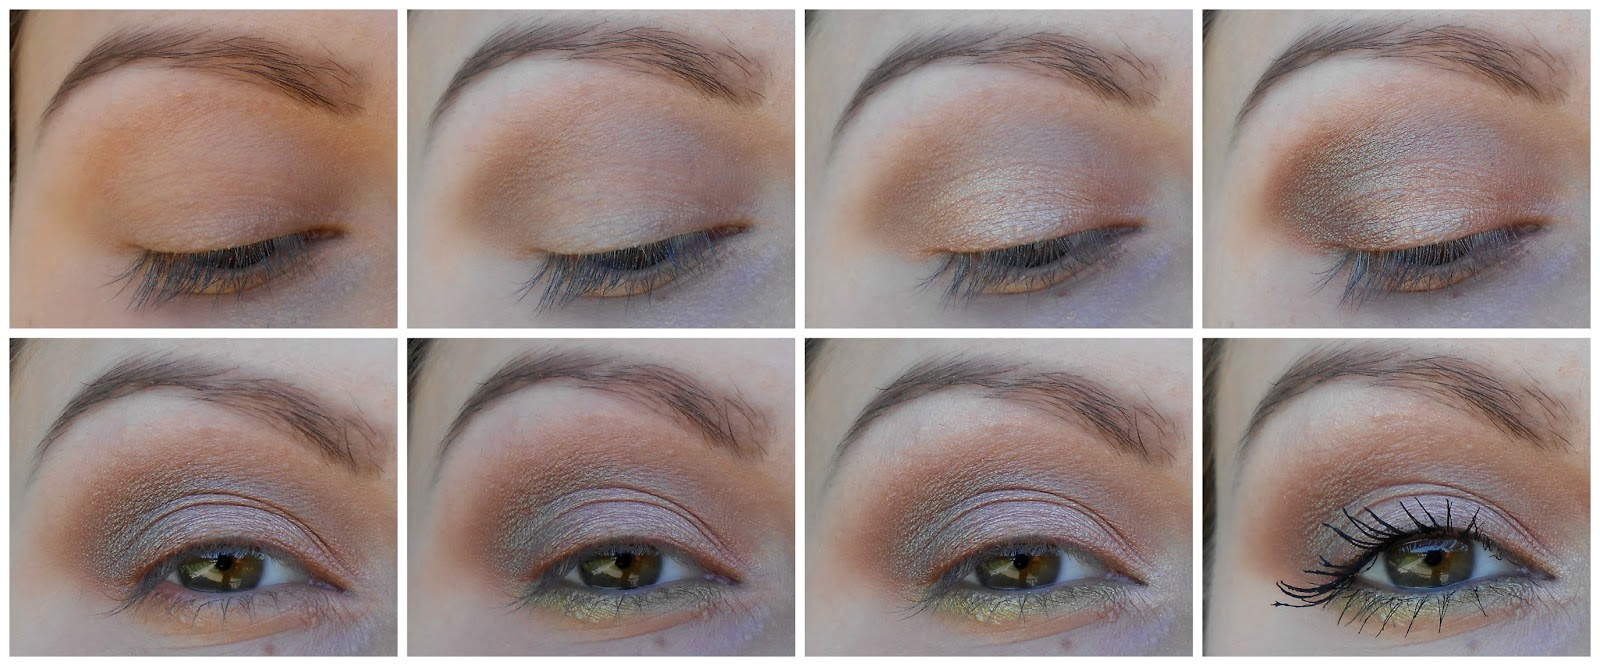 I Really Love To Wear These Eyeshadow, They Are Perfect For Day Time Look  Although I Use It Mostly For Gentle Looks,